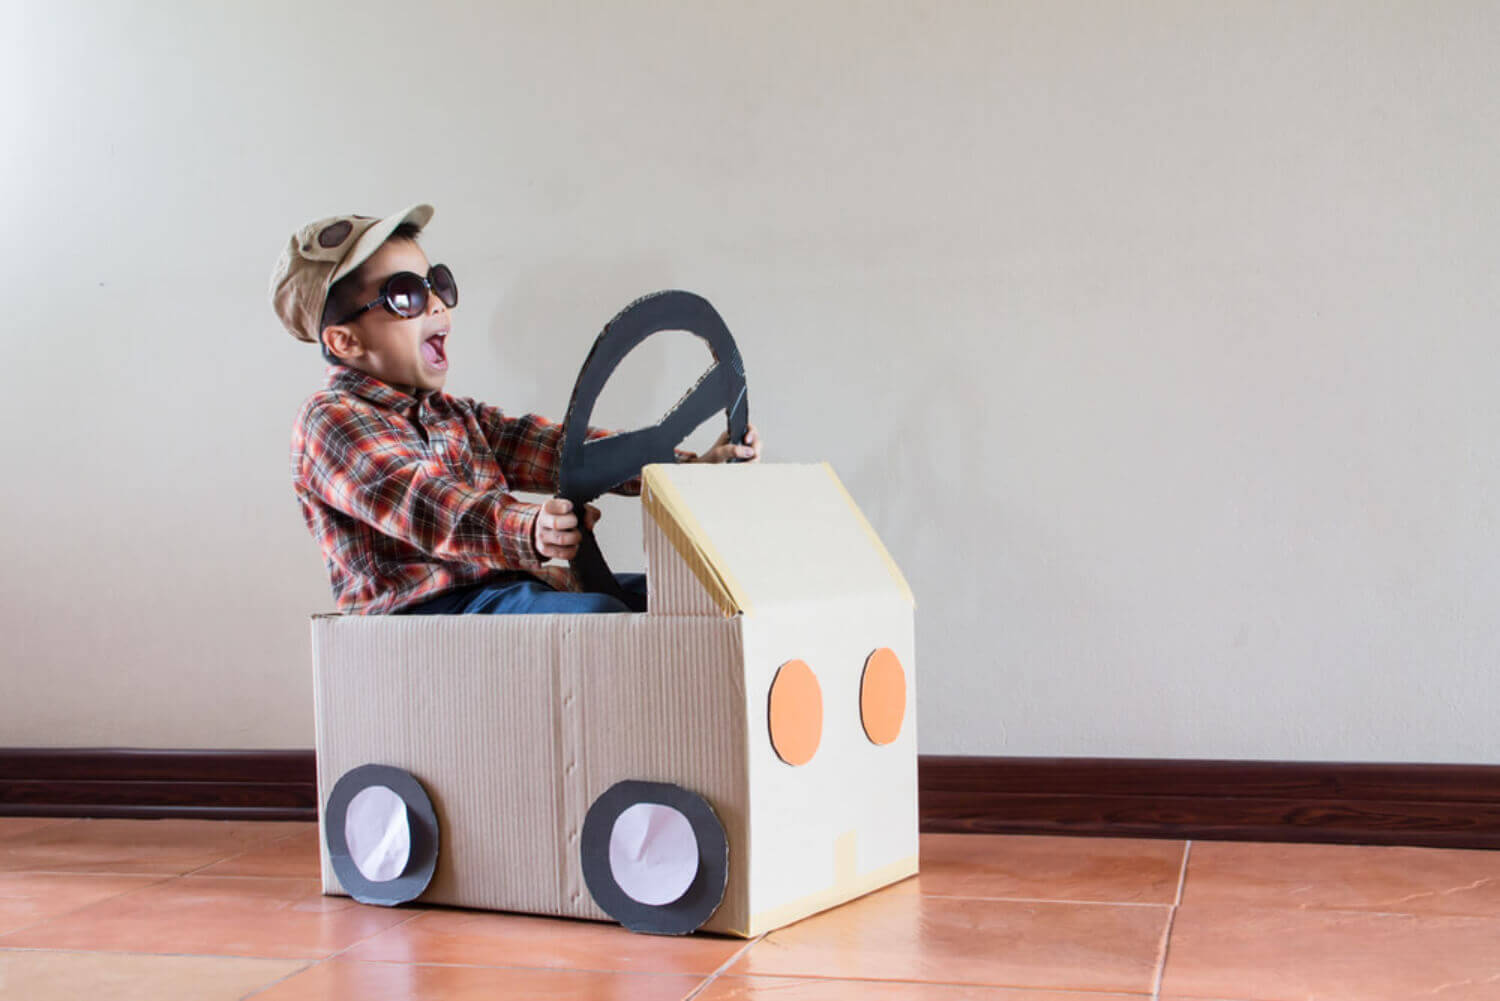 Child playing with a cardboard car, one of the types of play during development.